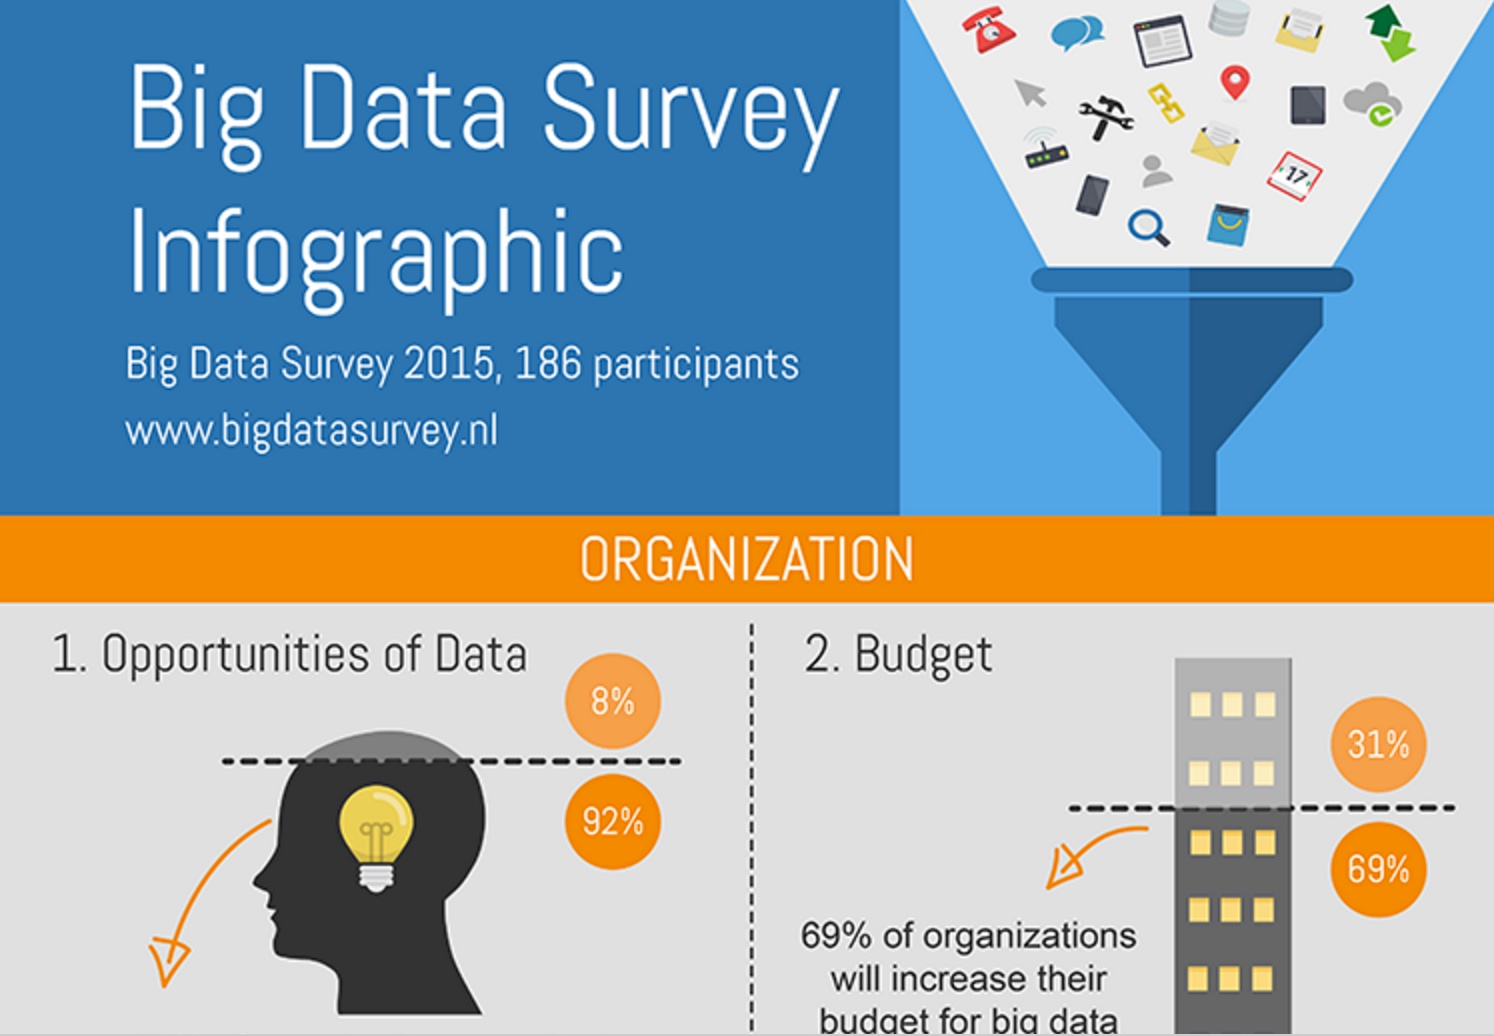 Datafloq_-_15_Visual_Insights_To_Get_Your_Organization_Ready_For_The_Future